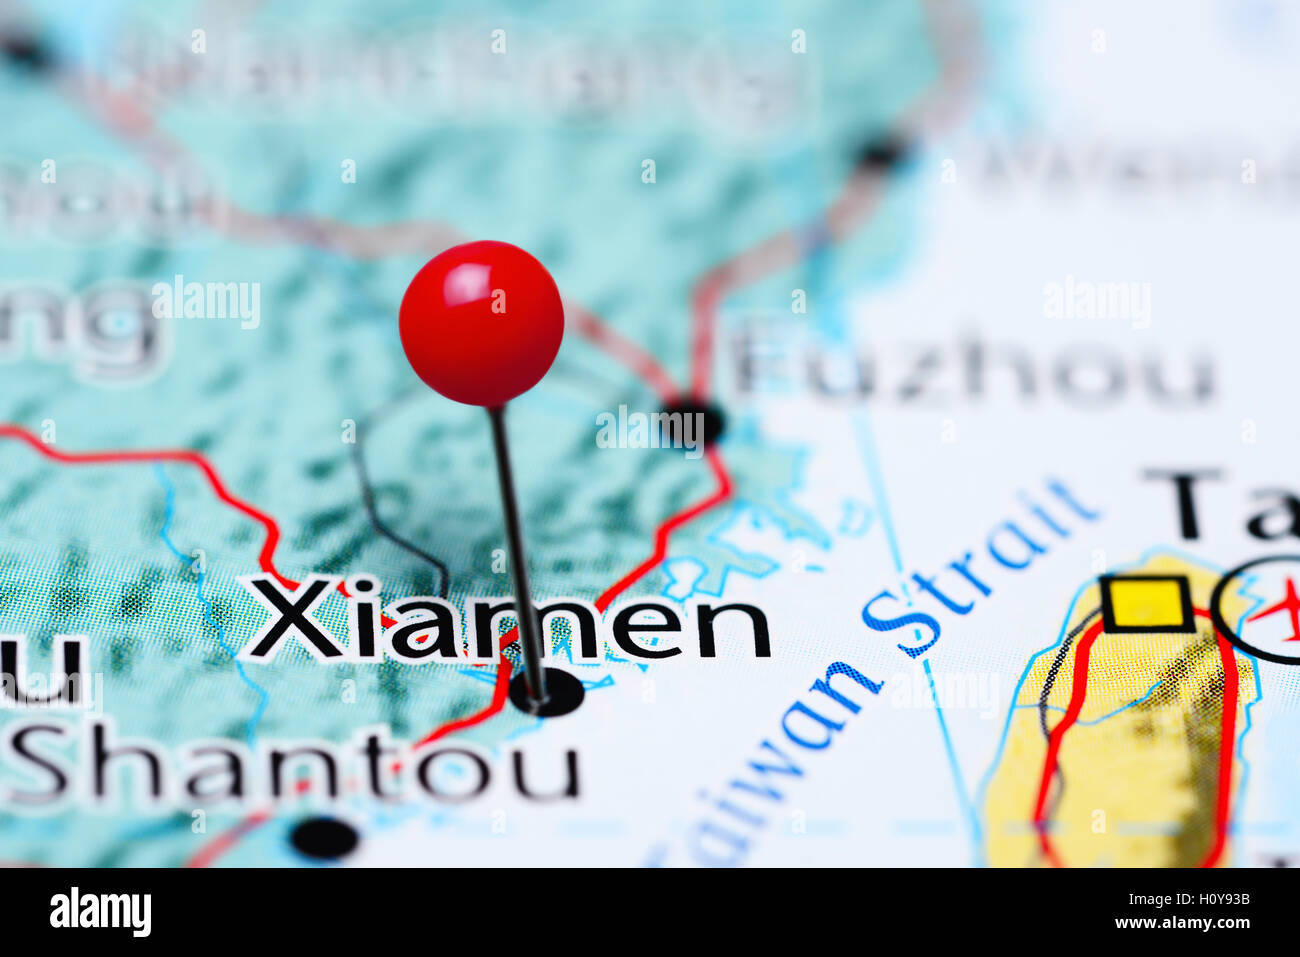 Xiamen pinned on a map of China - Stock Image